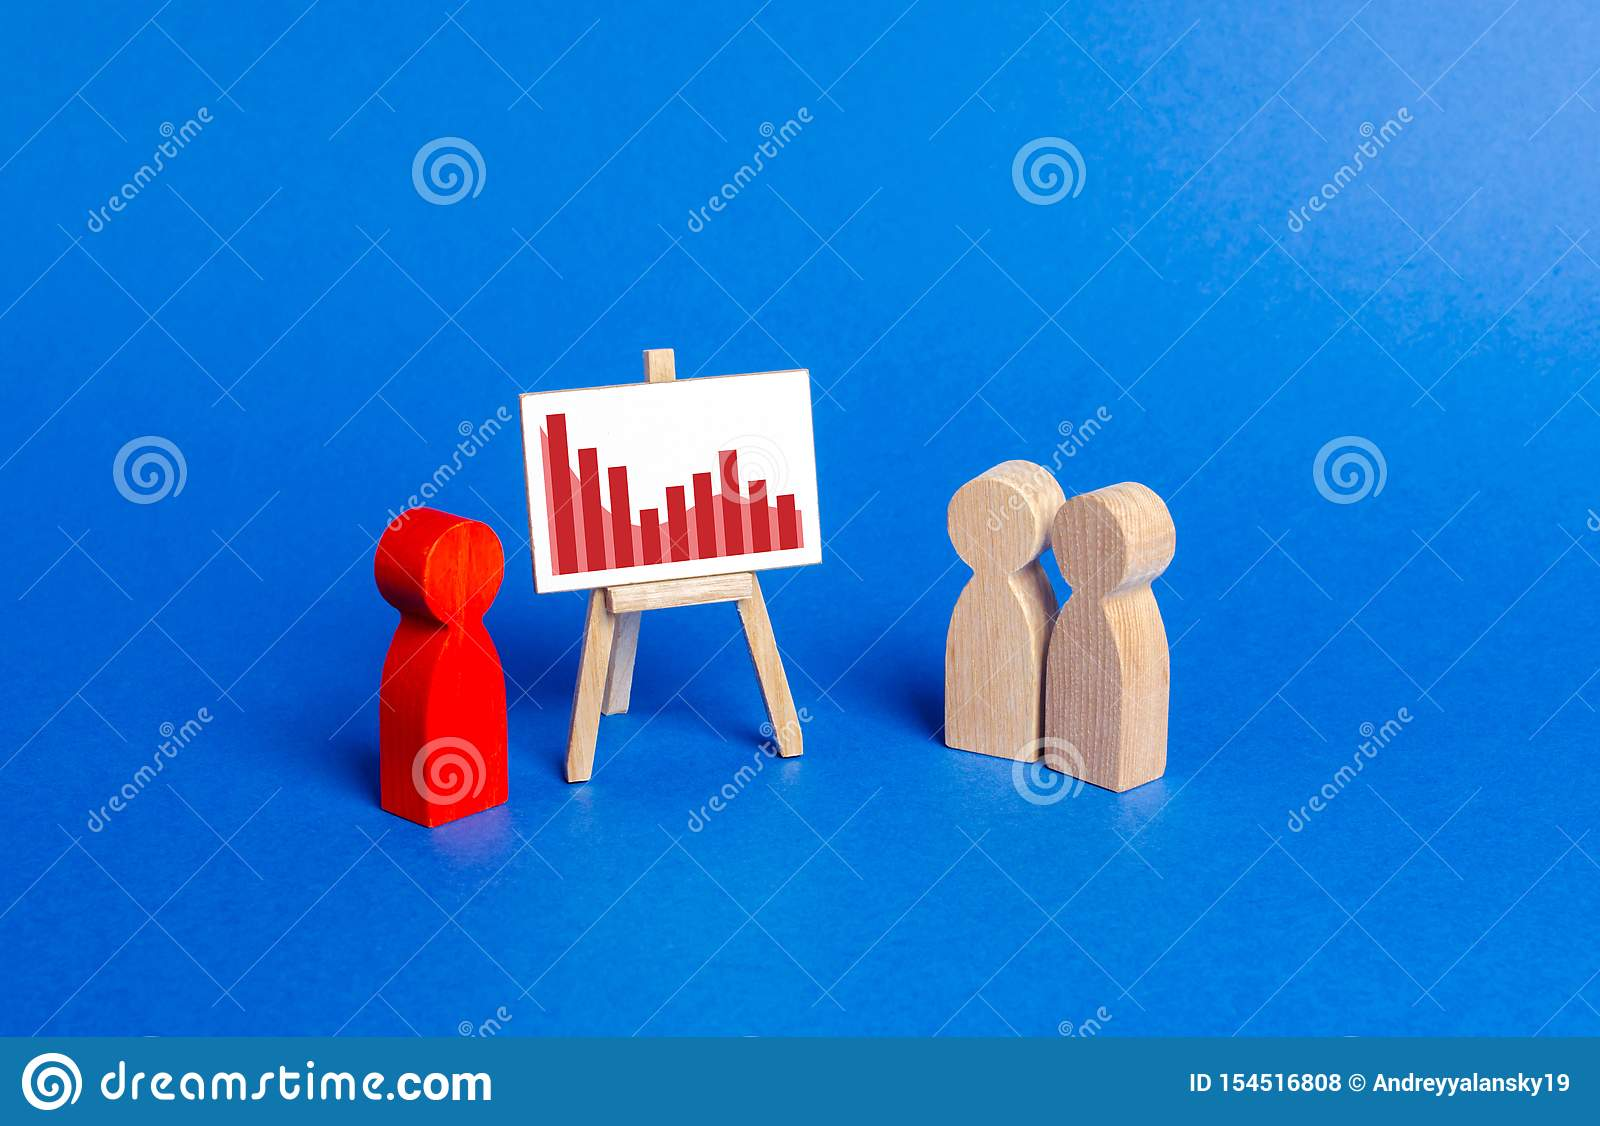 Red figurine of a man holds a presentation. Negative trend chart. Falling sales and profits, rising costs and losses. Bad times